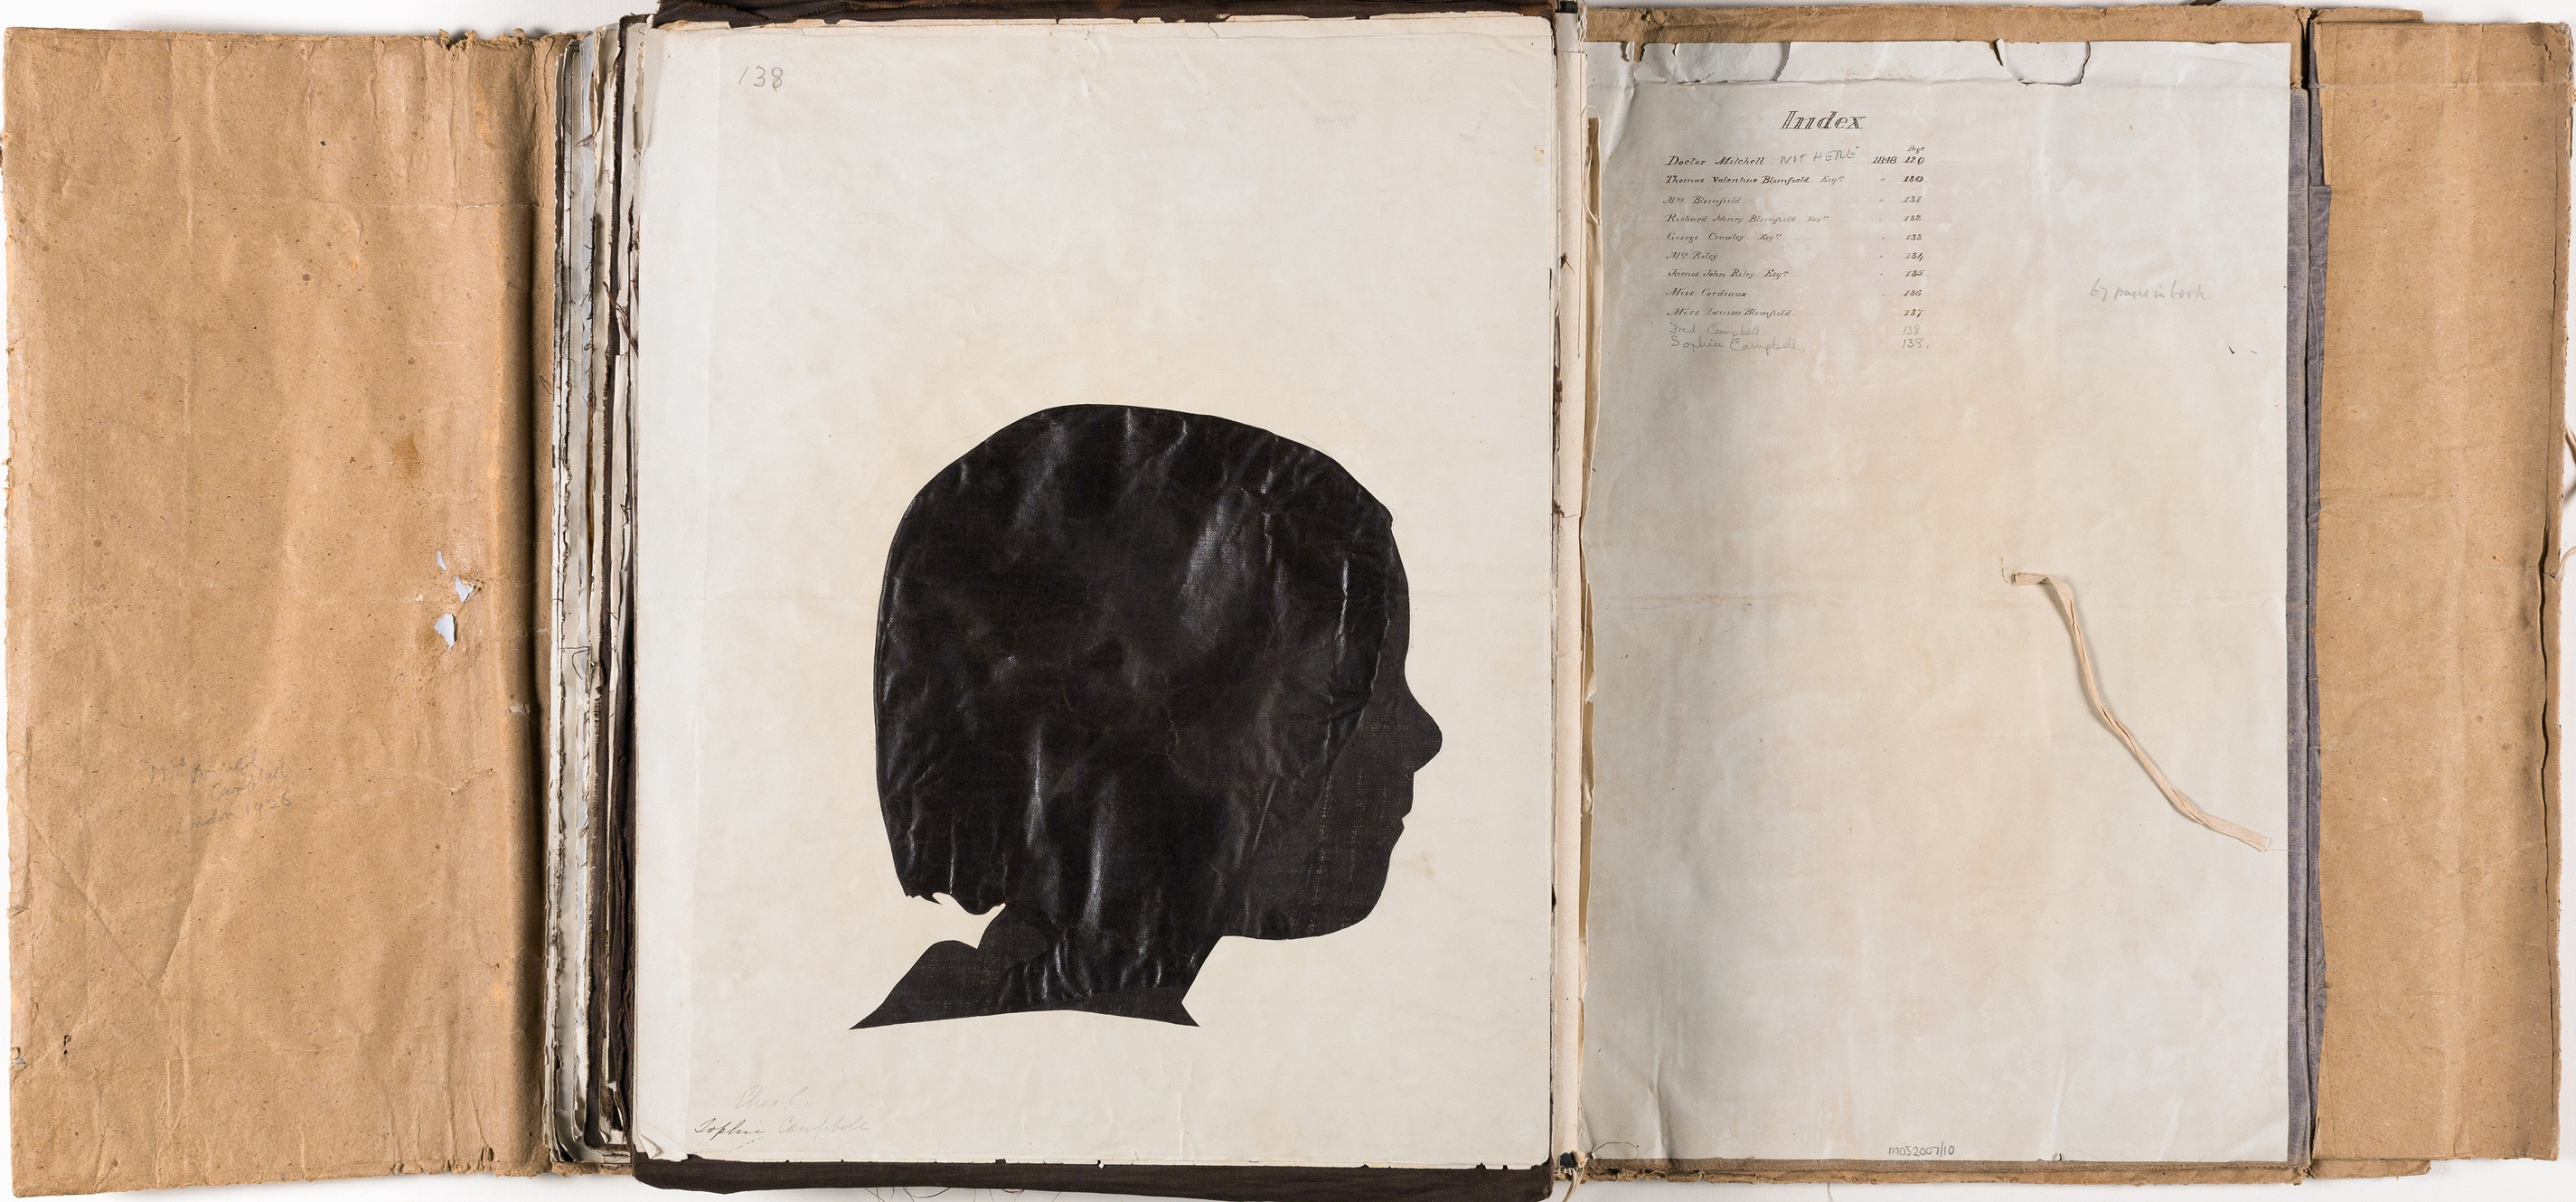 Silhouette likeness of Sophie Campbell (1848-1929) and album index page / by Marianne Collinson Close